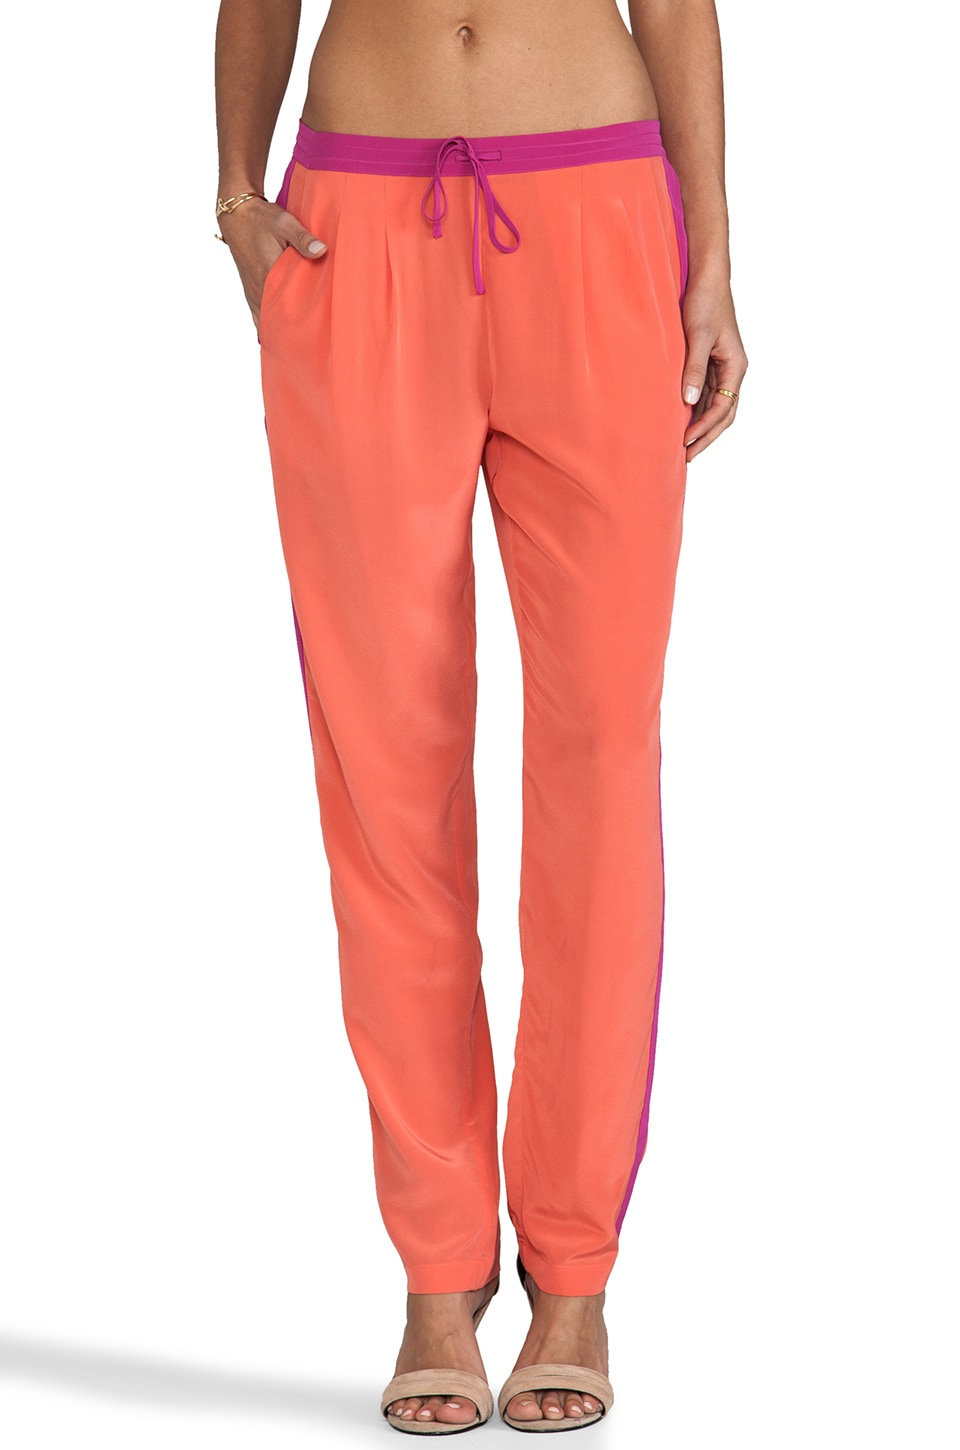 Twelfth Street By Cynthia Vincent Samsa Signature Pant in Passion Orange/Raspberry